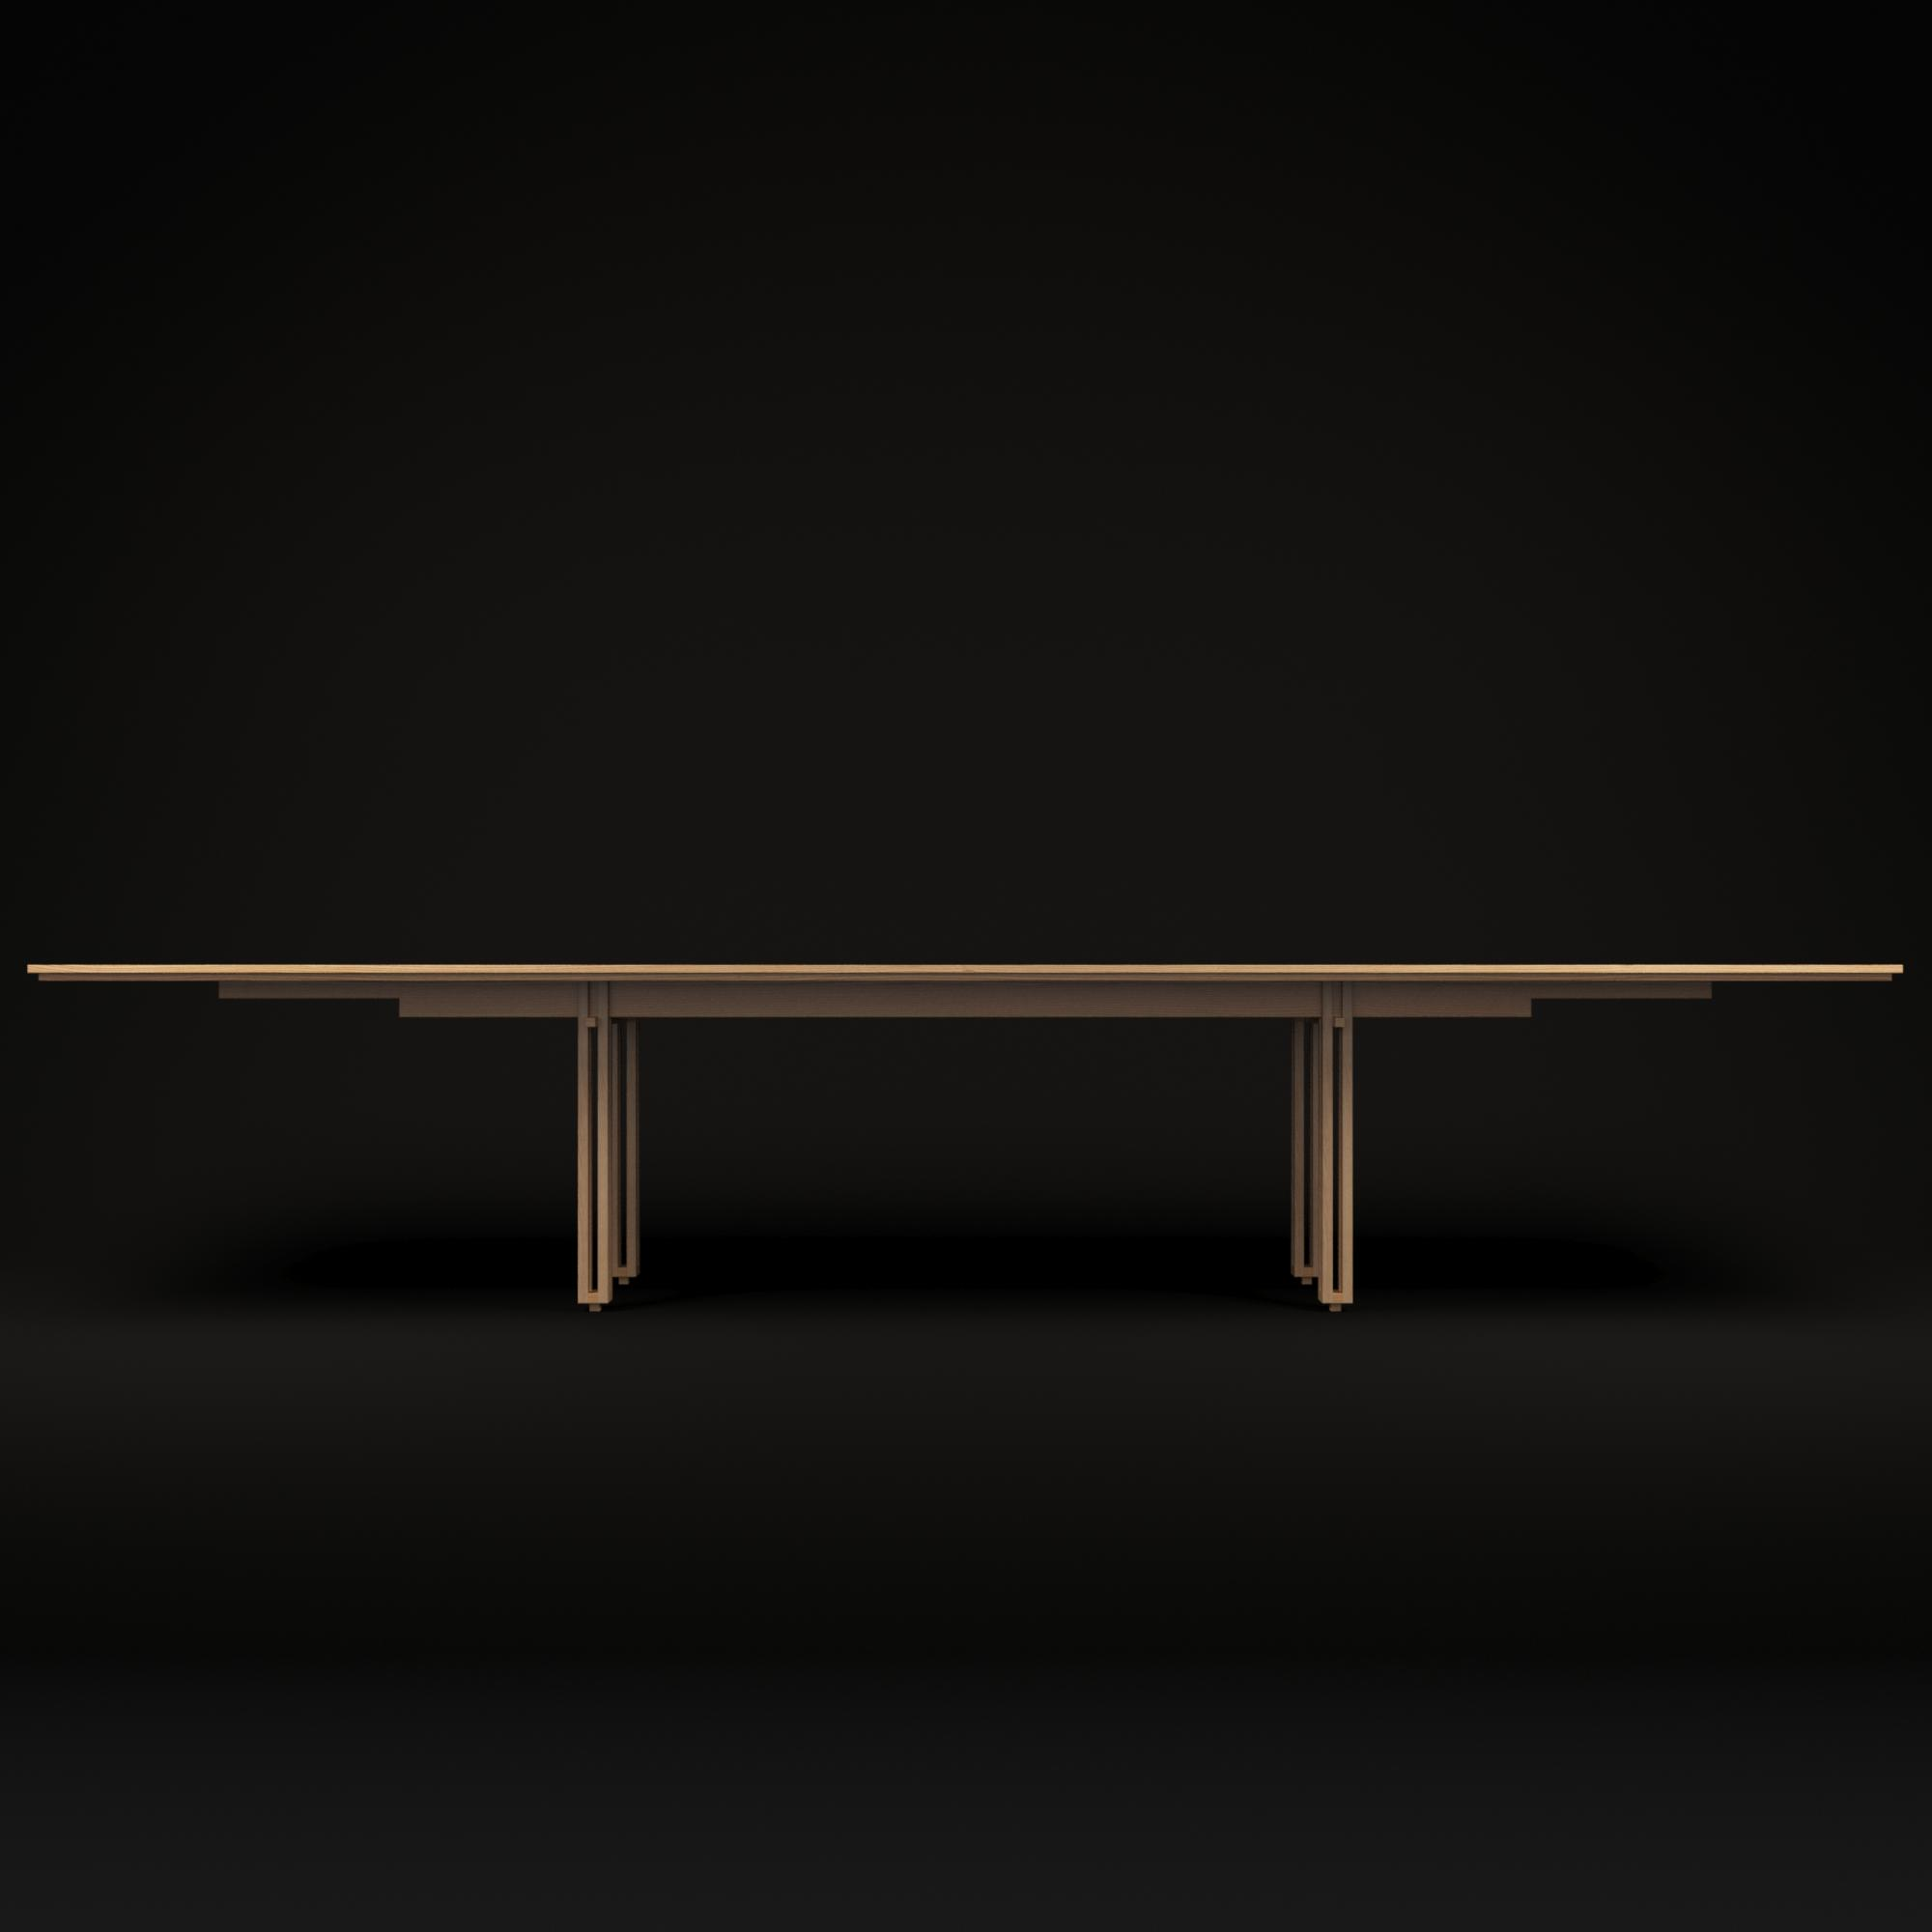 TABLE_FRONT 01.JPG